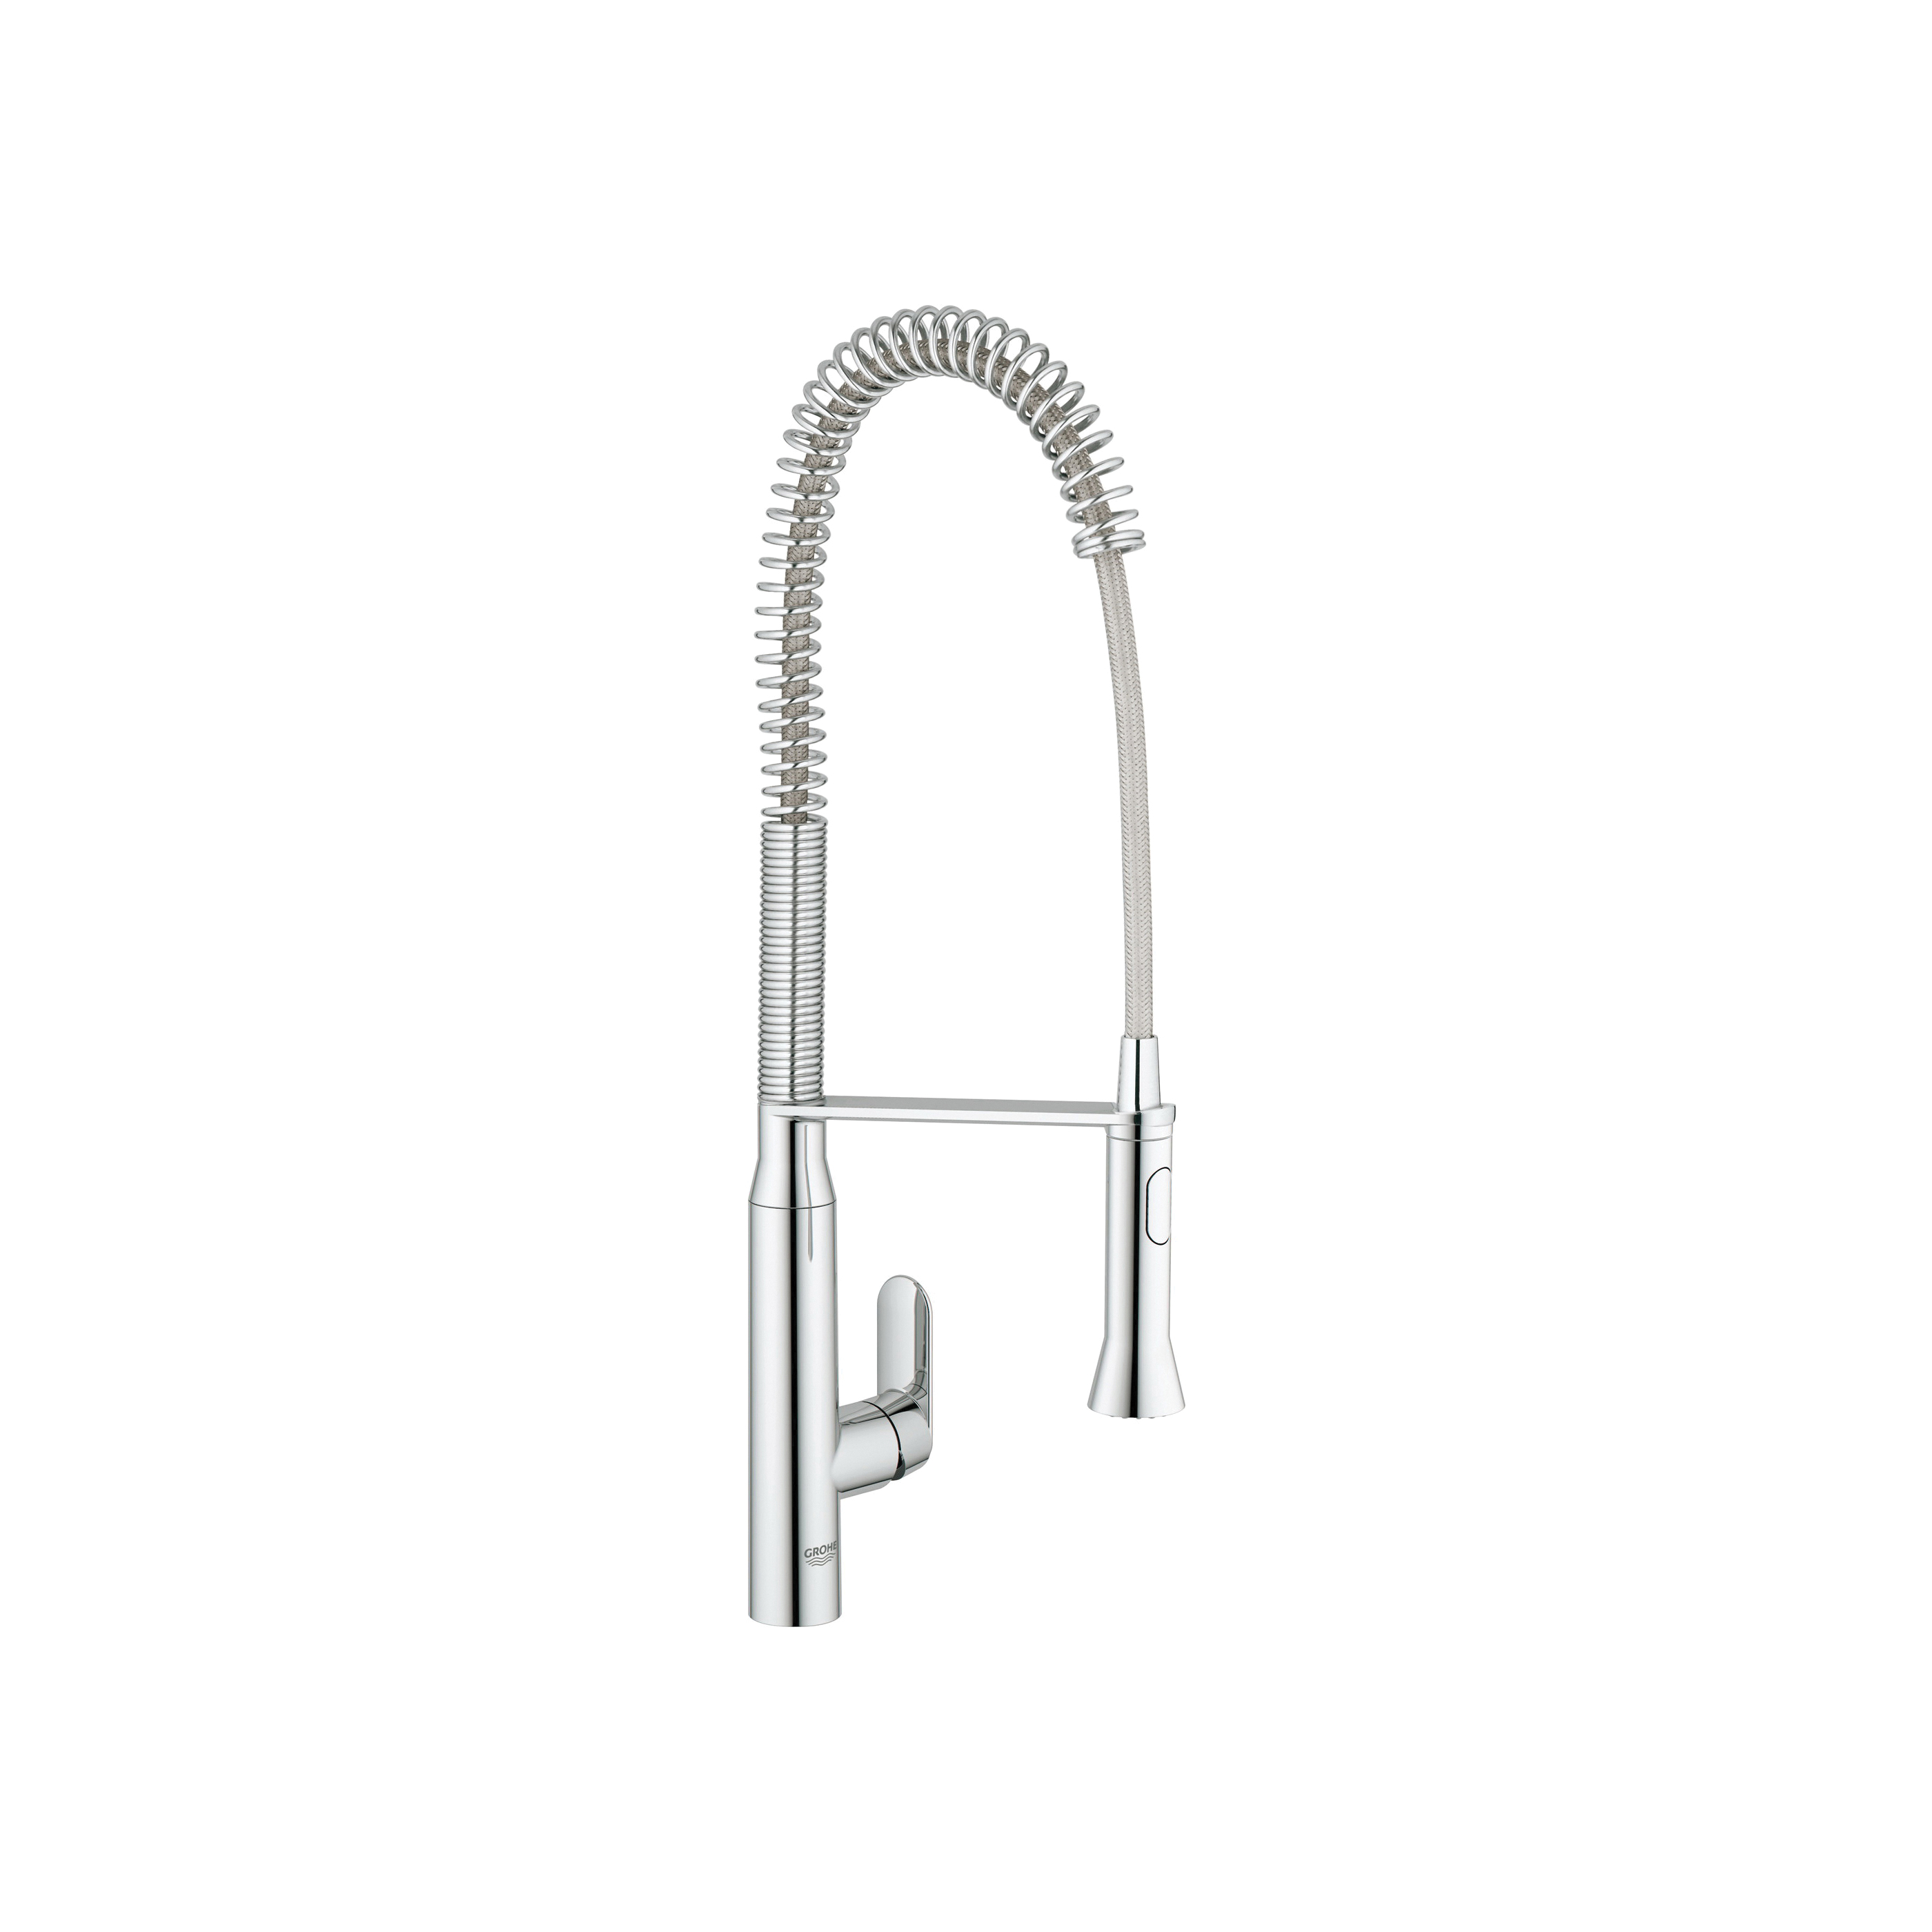 GROHE 32951000 K7 Sink Mixer, 1.75 gpm, 1 Handle, Chrome Plated, Import